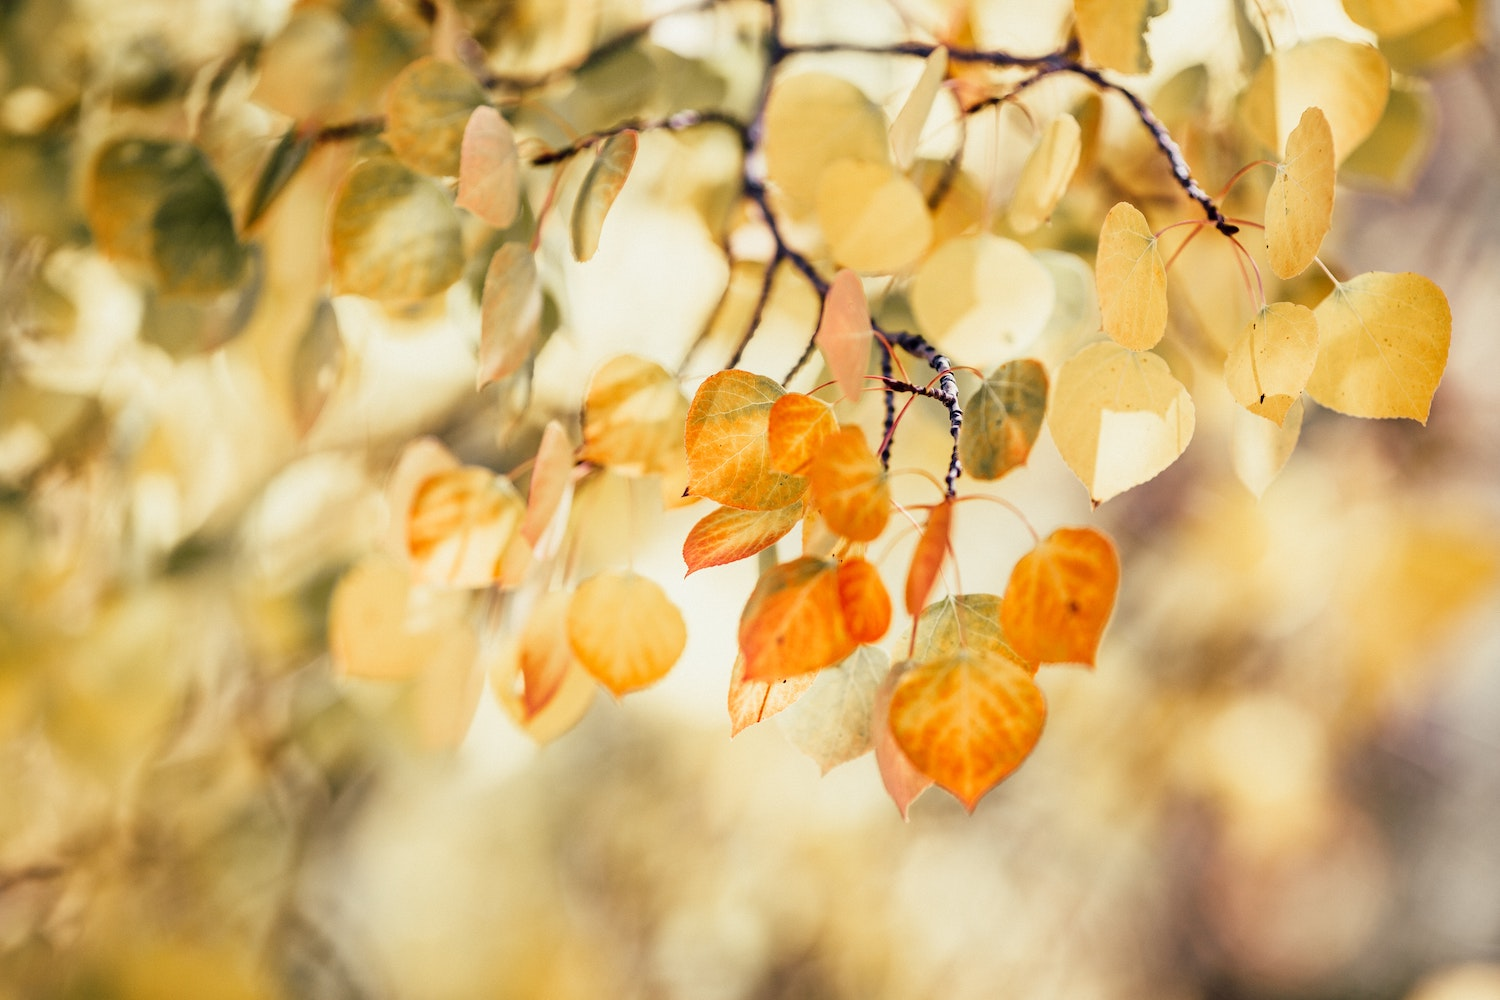 Orange and green leaves on a tree, turned semi-transparent by sunlight.